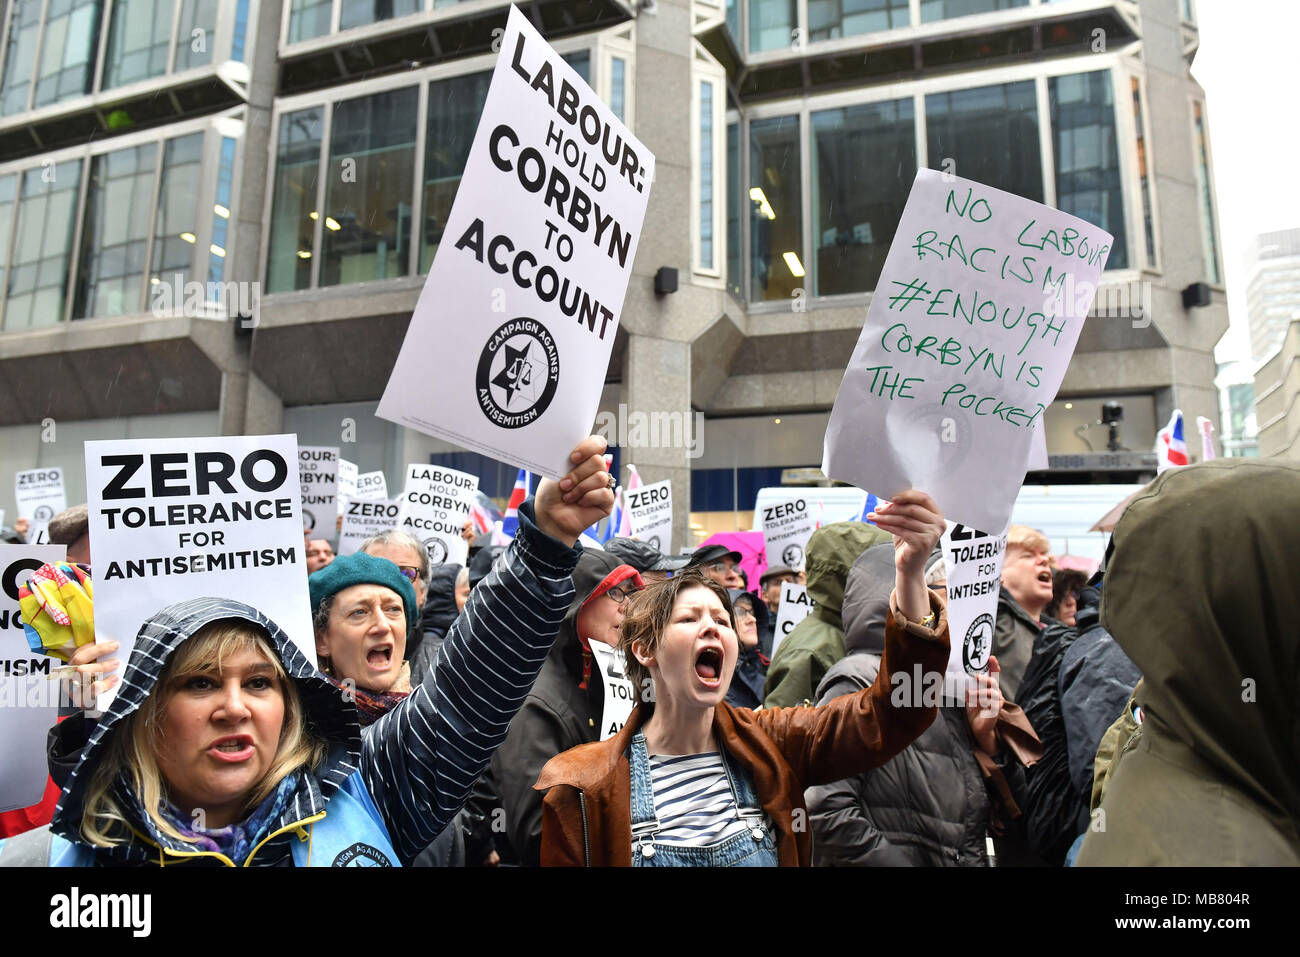 Protesters during the demonstration organised by the Campaign Against Antisemitism outside the Labour Party headquarters in central London, against alleged prejudice in the Labour Party, amid a row over the party's handling of claims of anti-semitism. - Stock Image